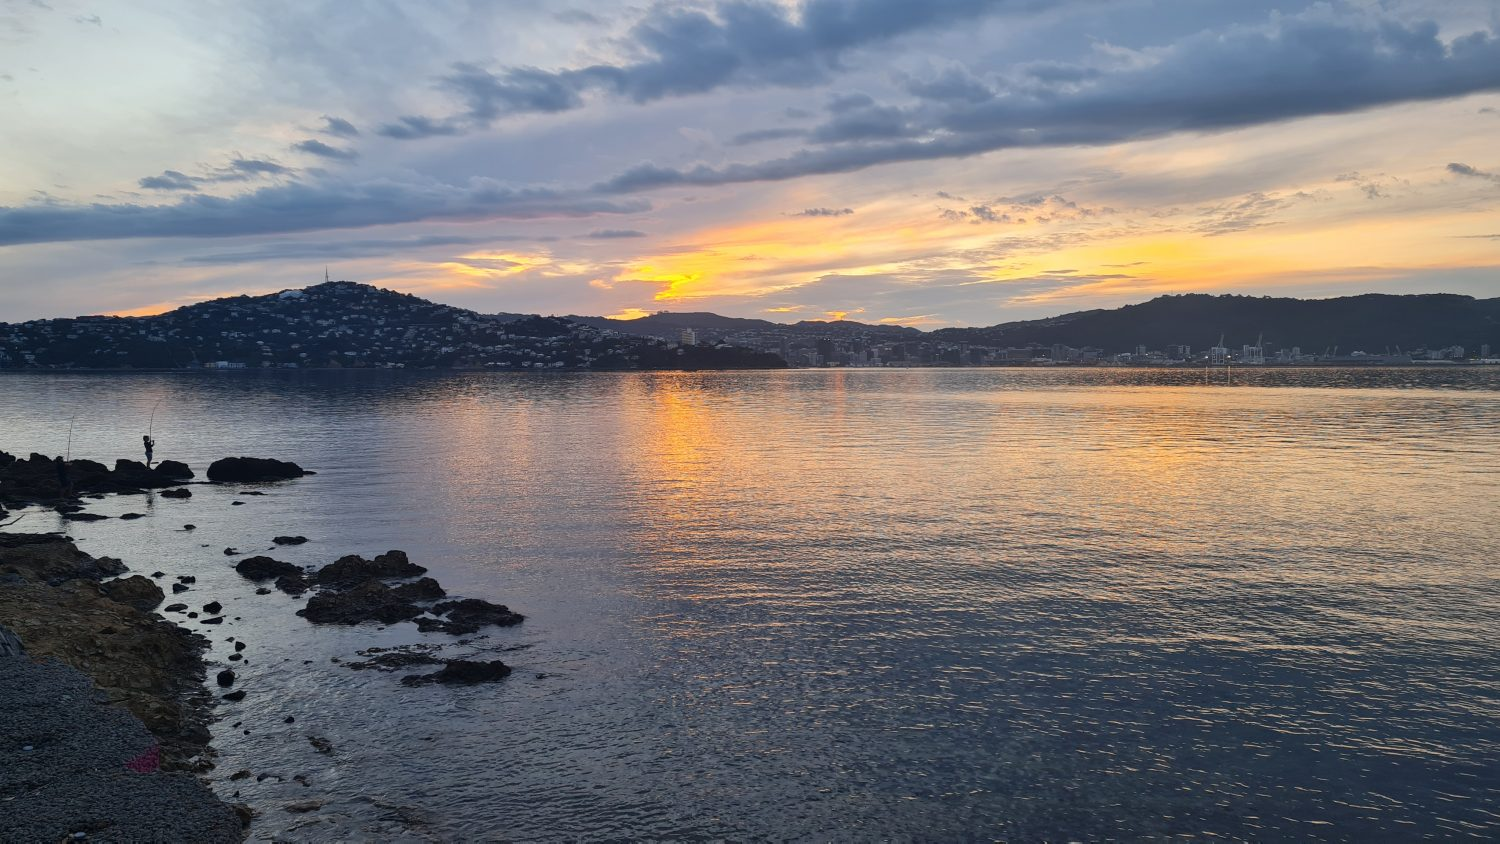 Wellington coast at dusk, copyright Content Catnip 2021